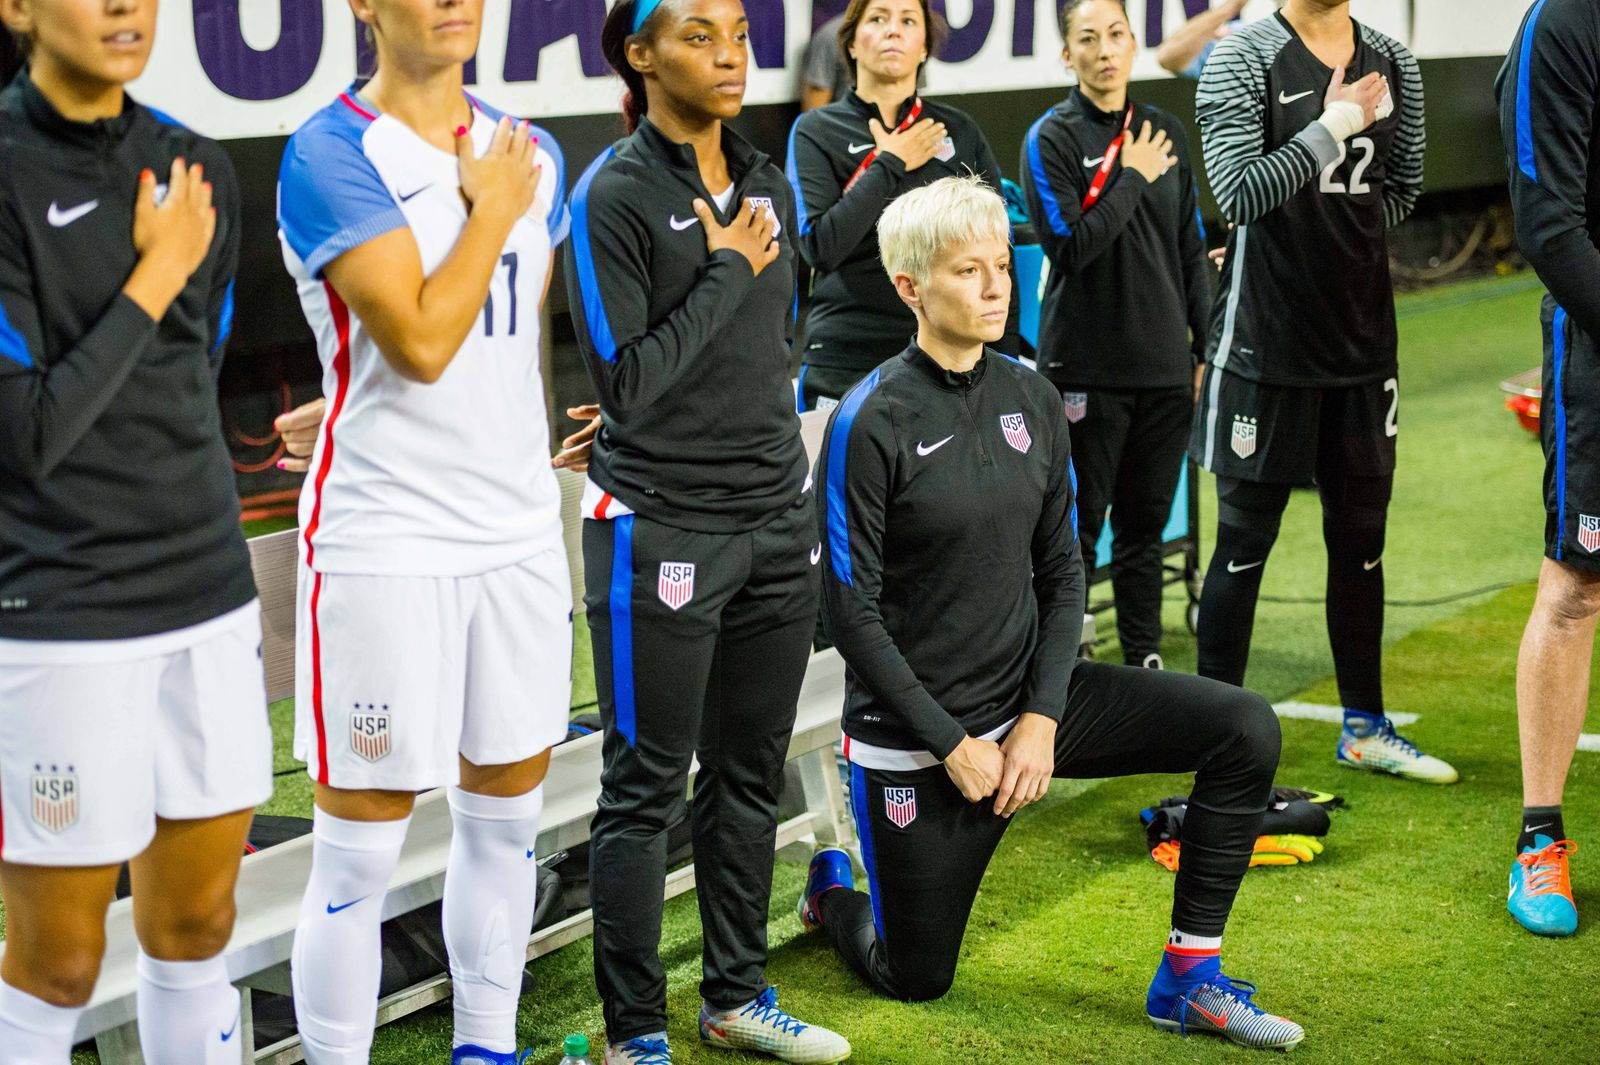 USWNT M Megan Rapinoe (15) kneels and does not stand during the National Anthem during the Women s I